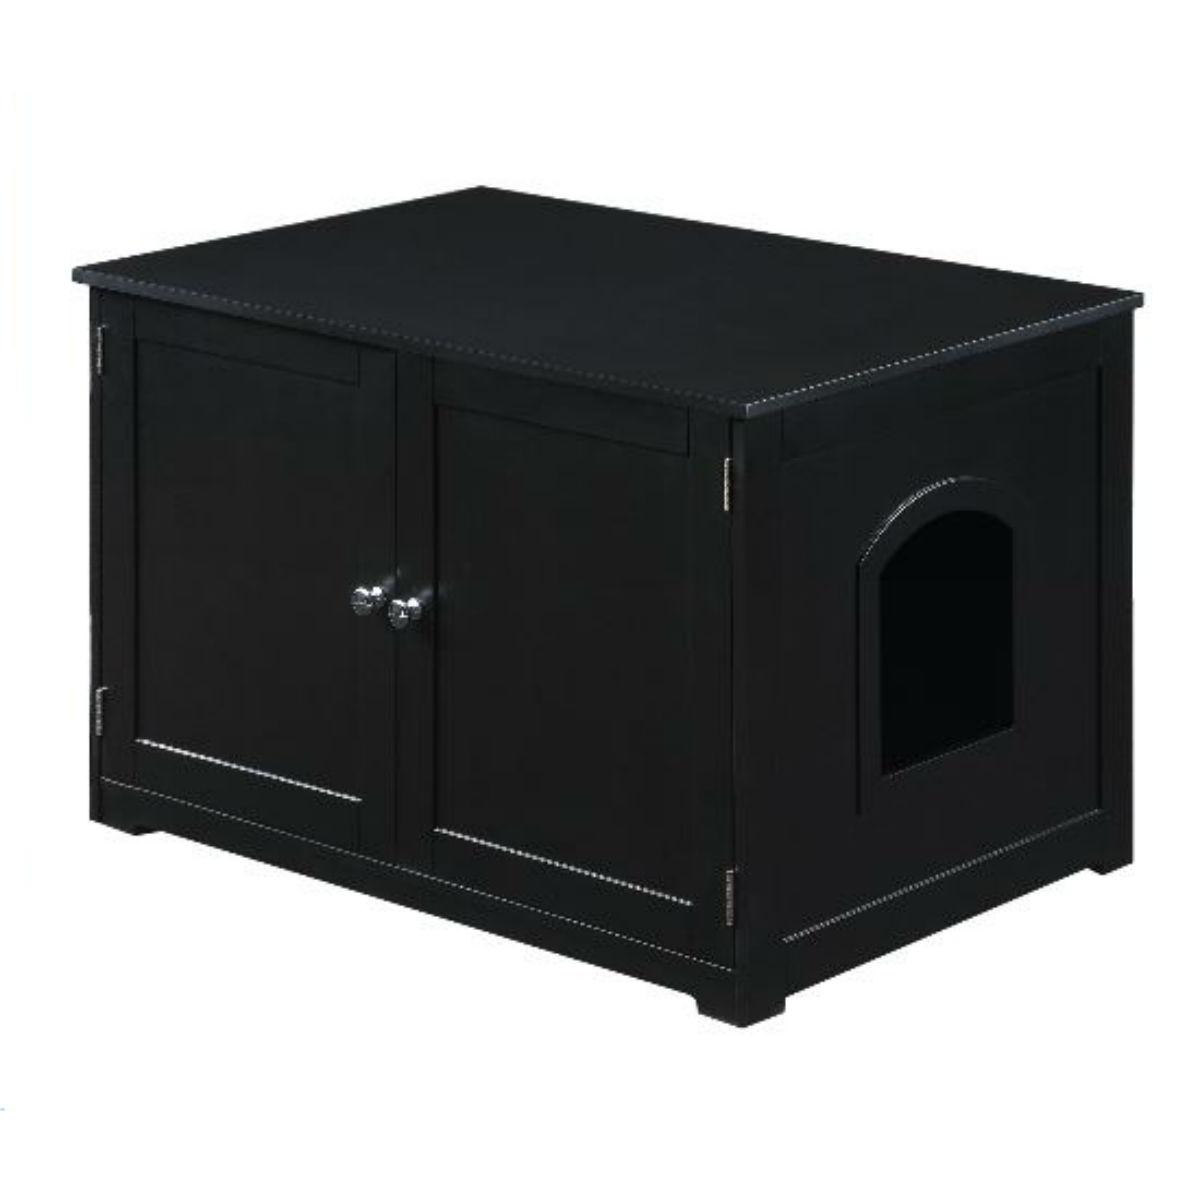 Merry Products Cat Litter Loo Bench Cat Box Enclosure - Black